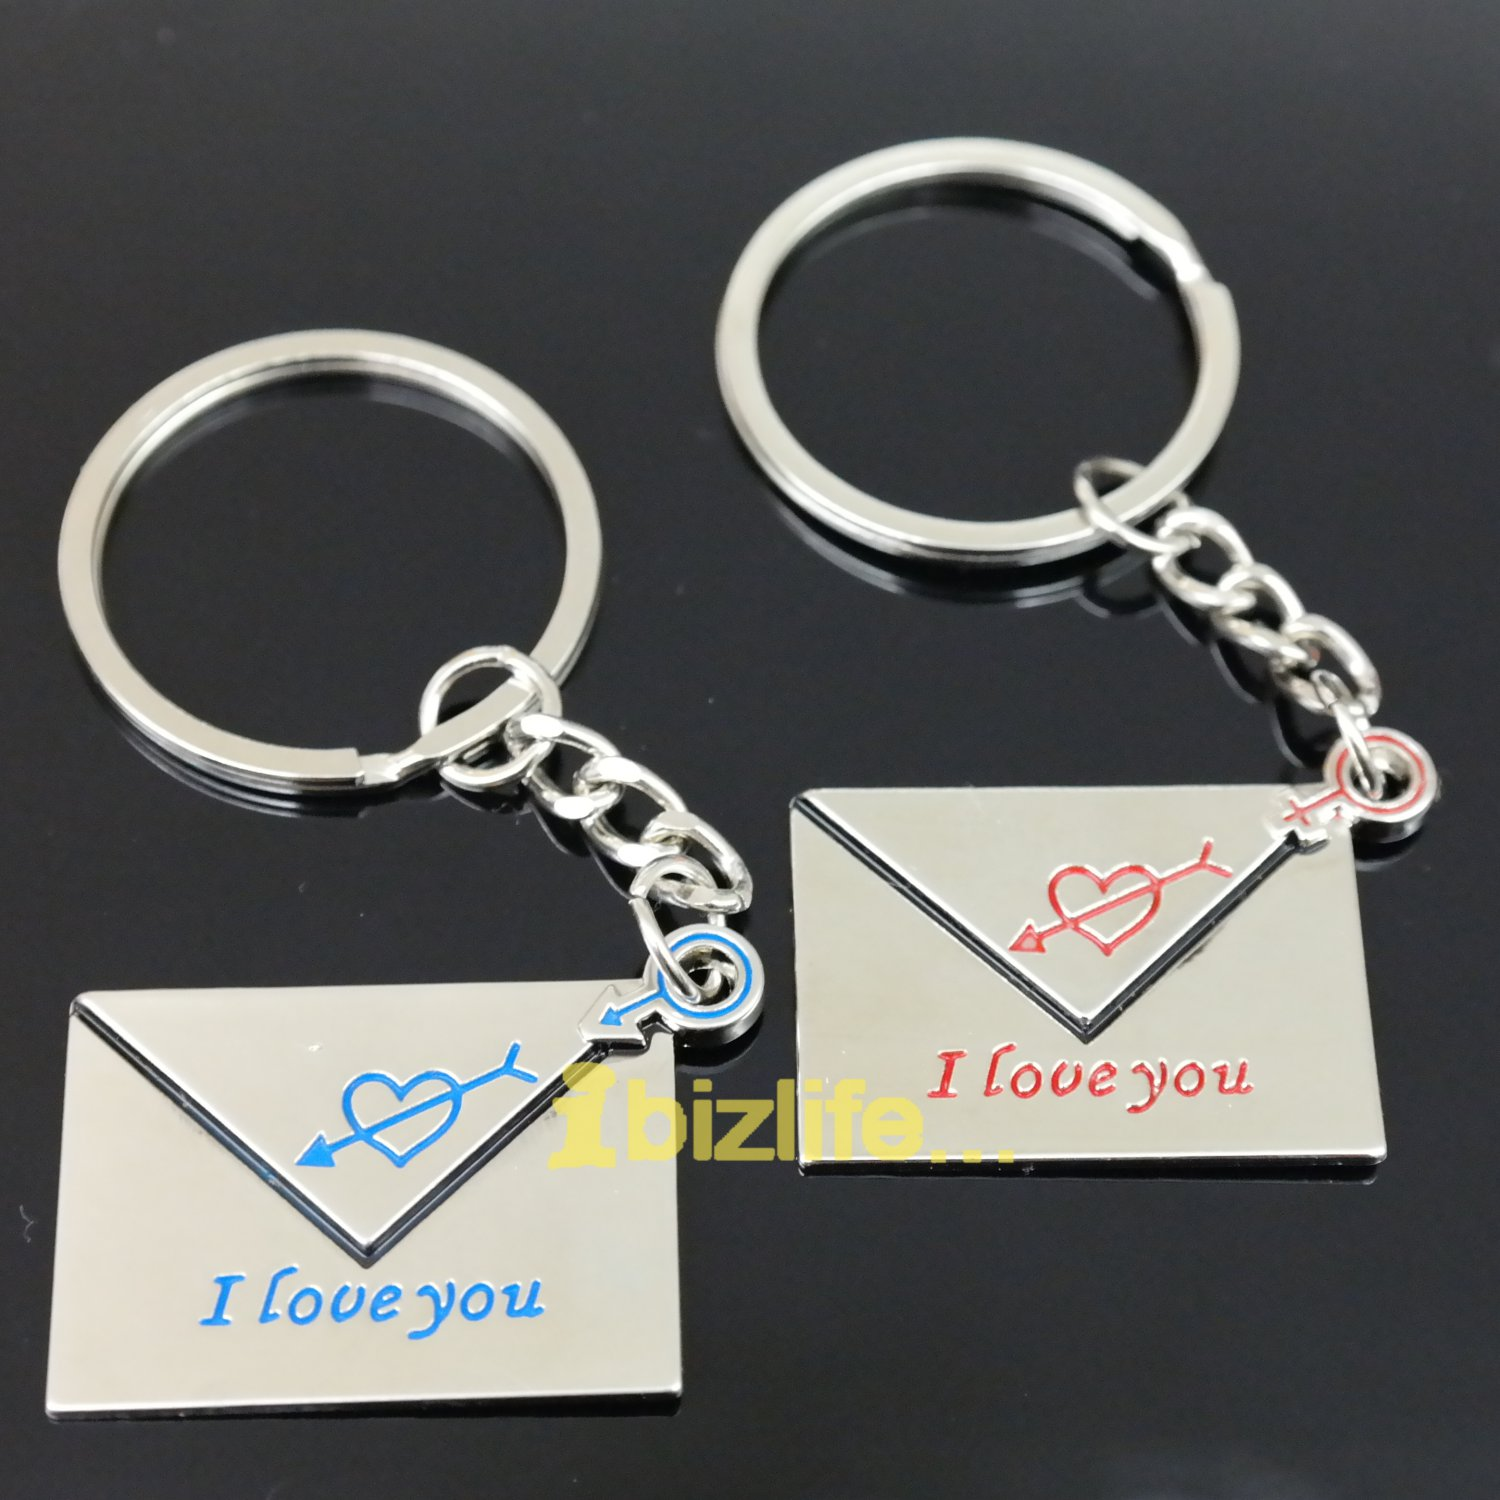 Metal keychain with a pair of Sweet lovely letters to LOVER as gift